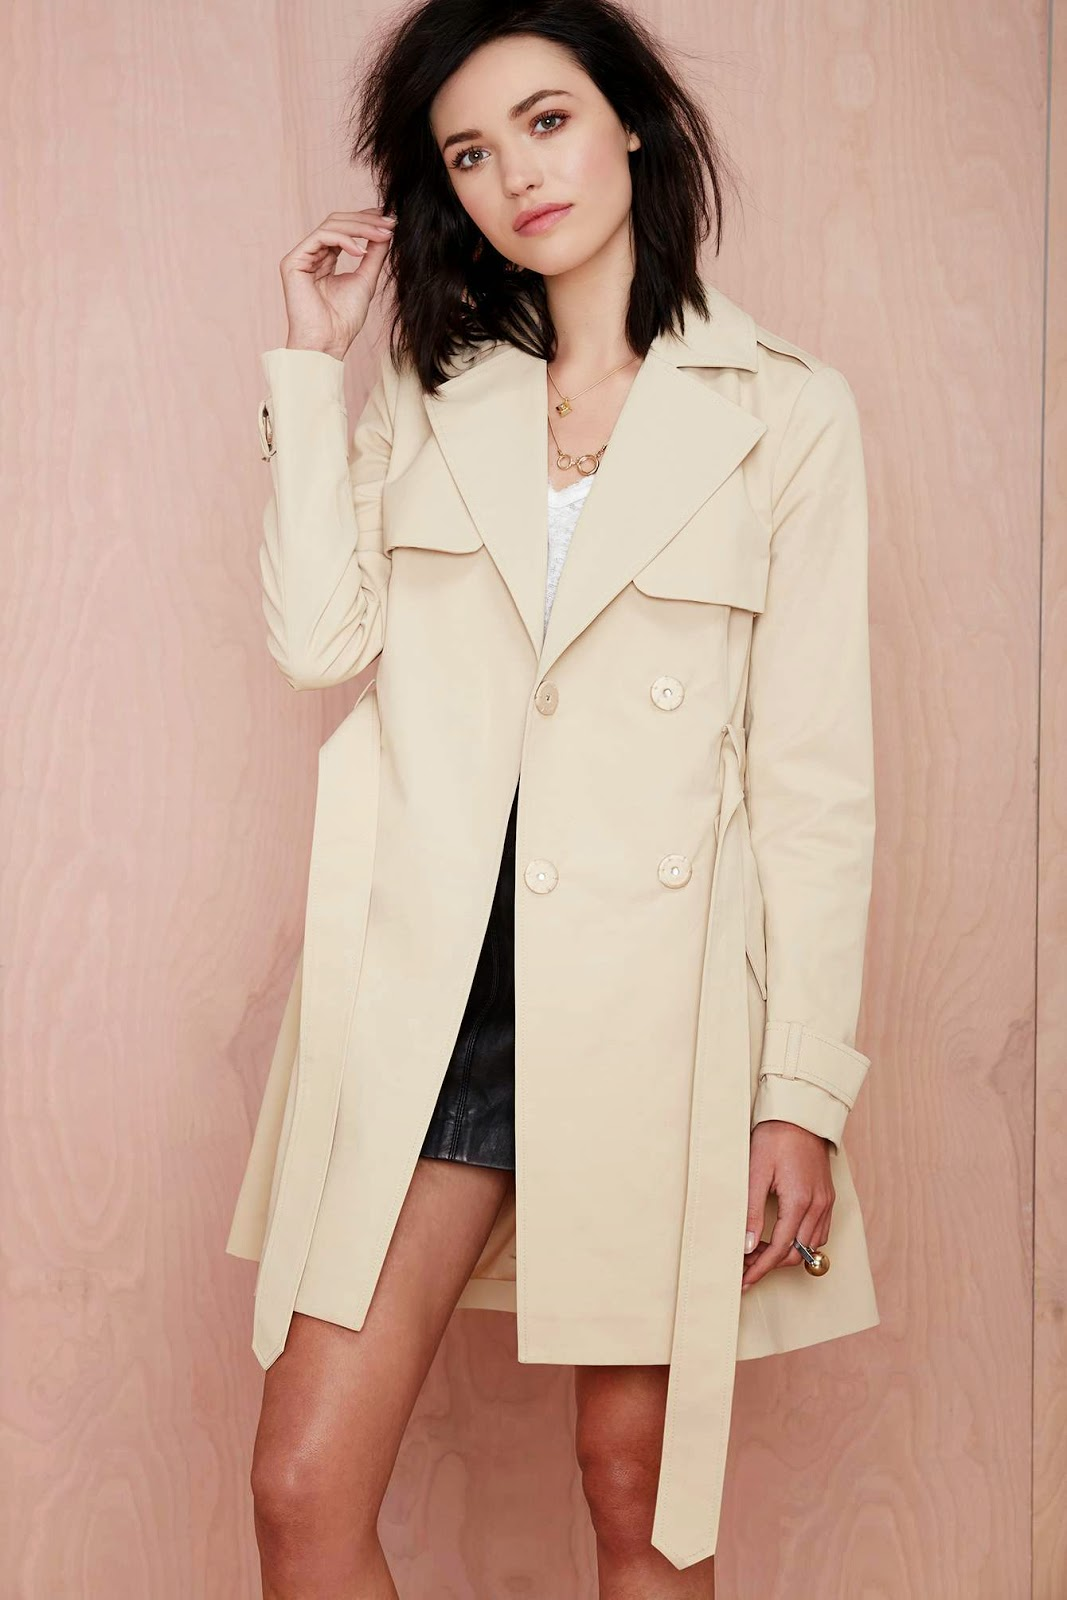 Cora Keegan – Nasty Gal 2015 Collection